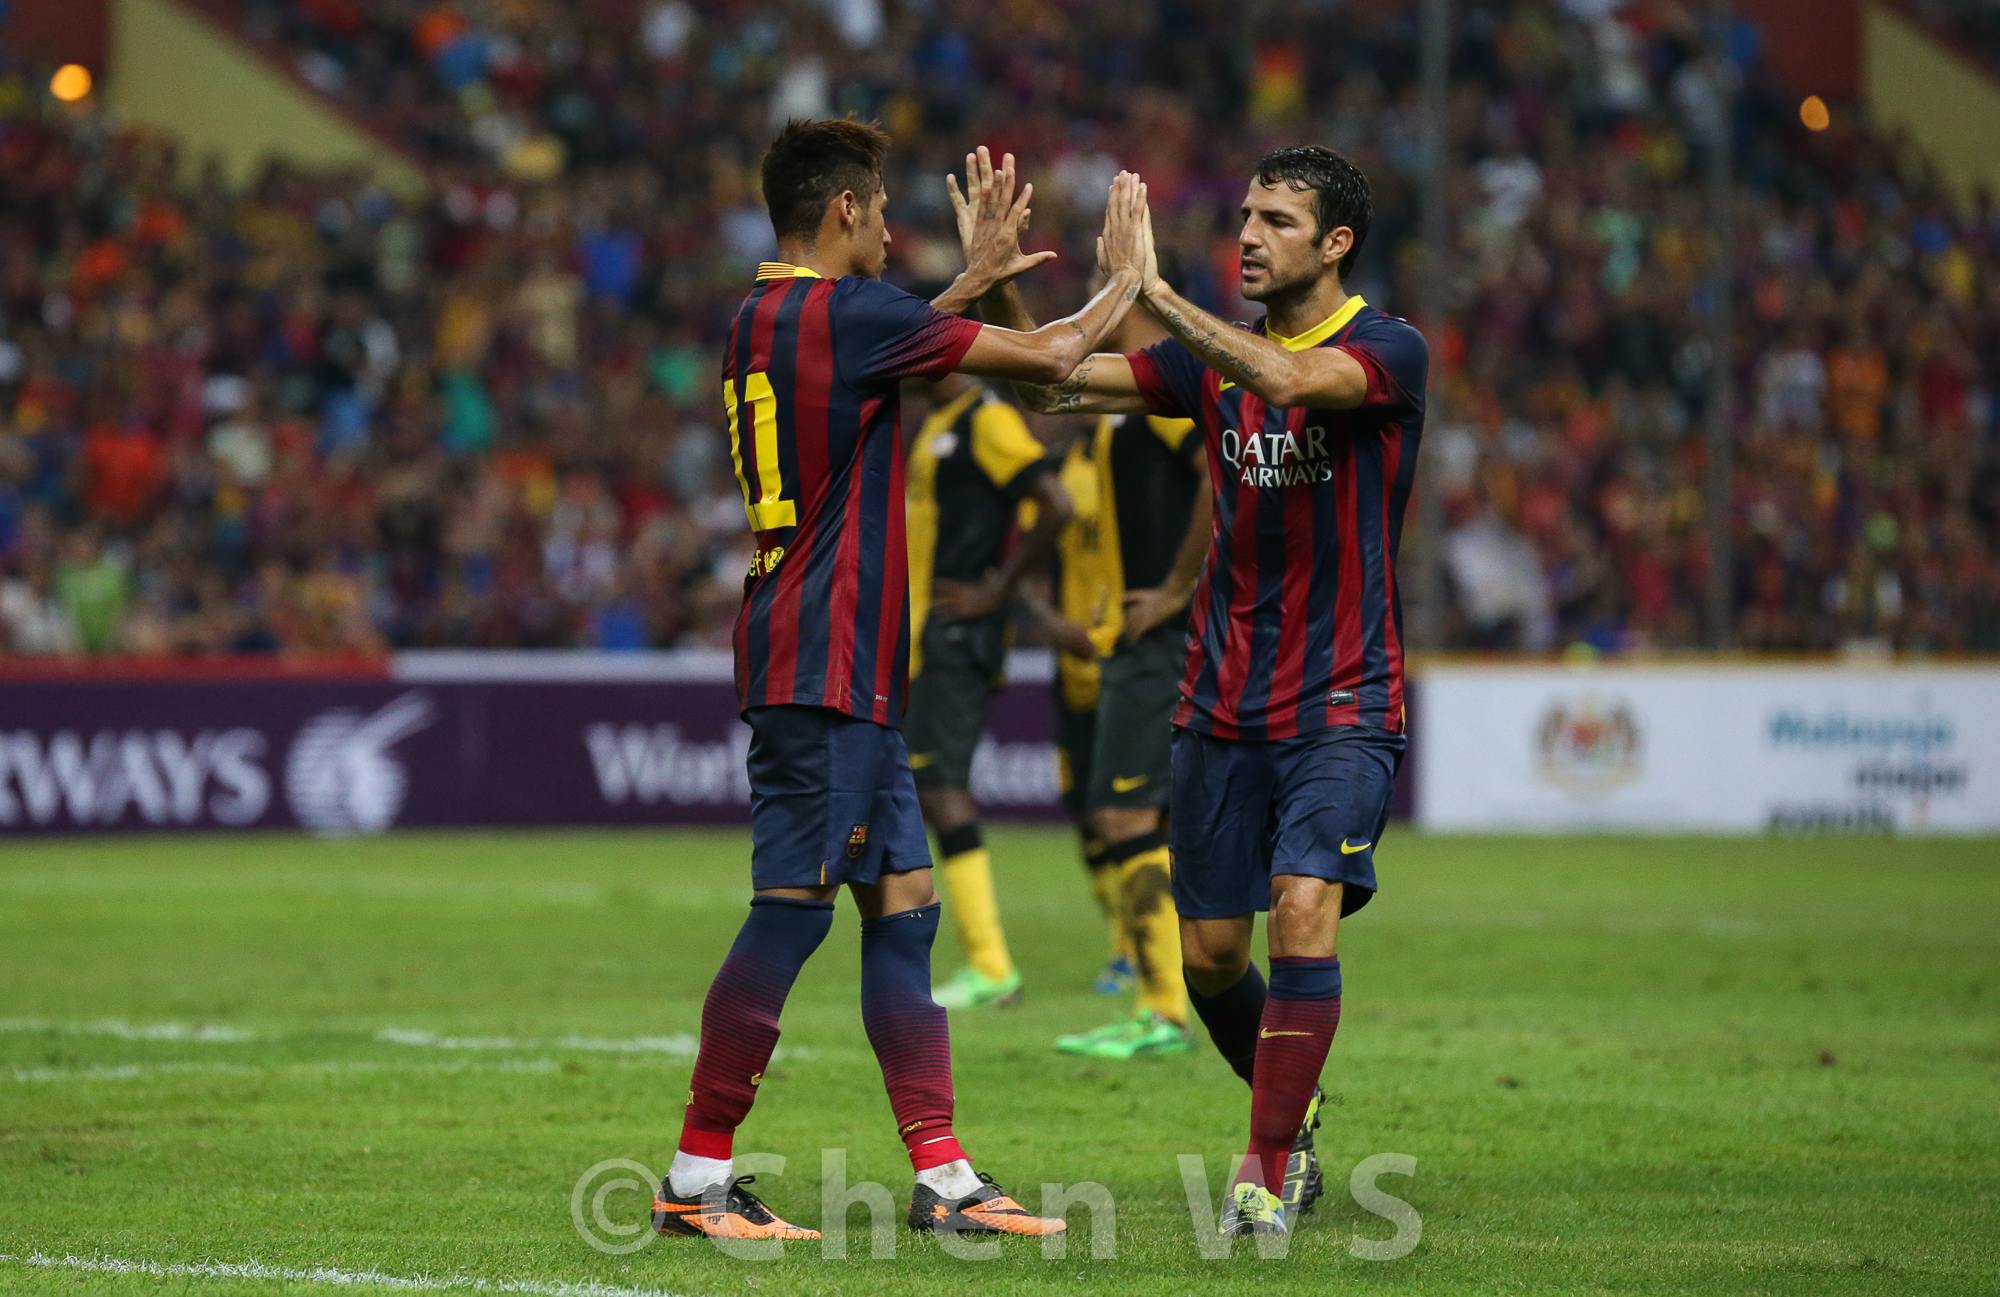 Neymar and Cesc Fabregas high five